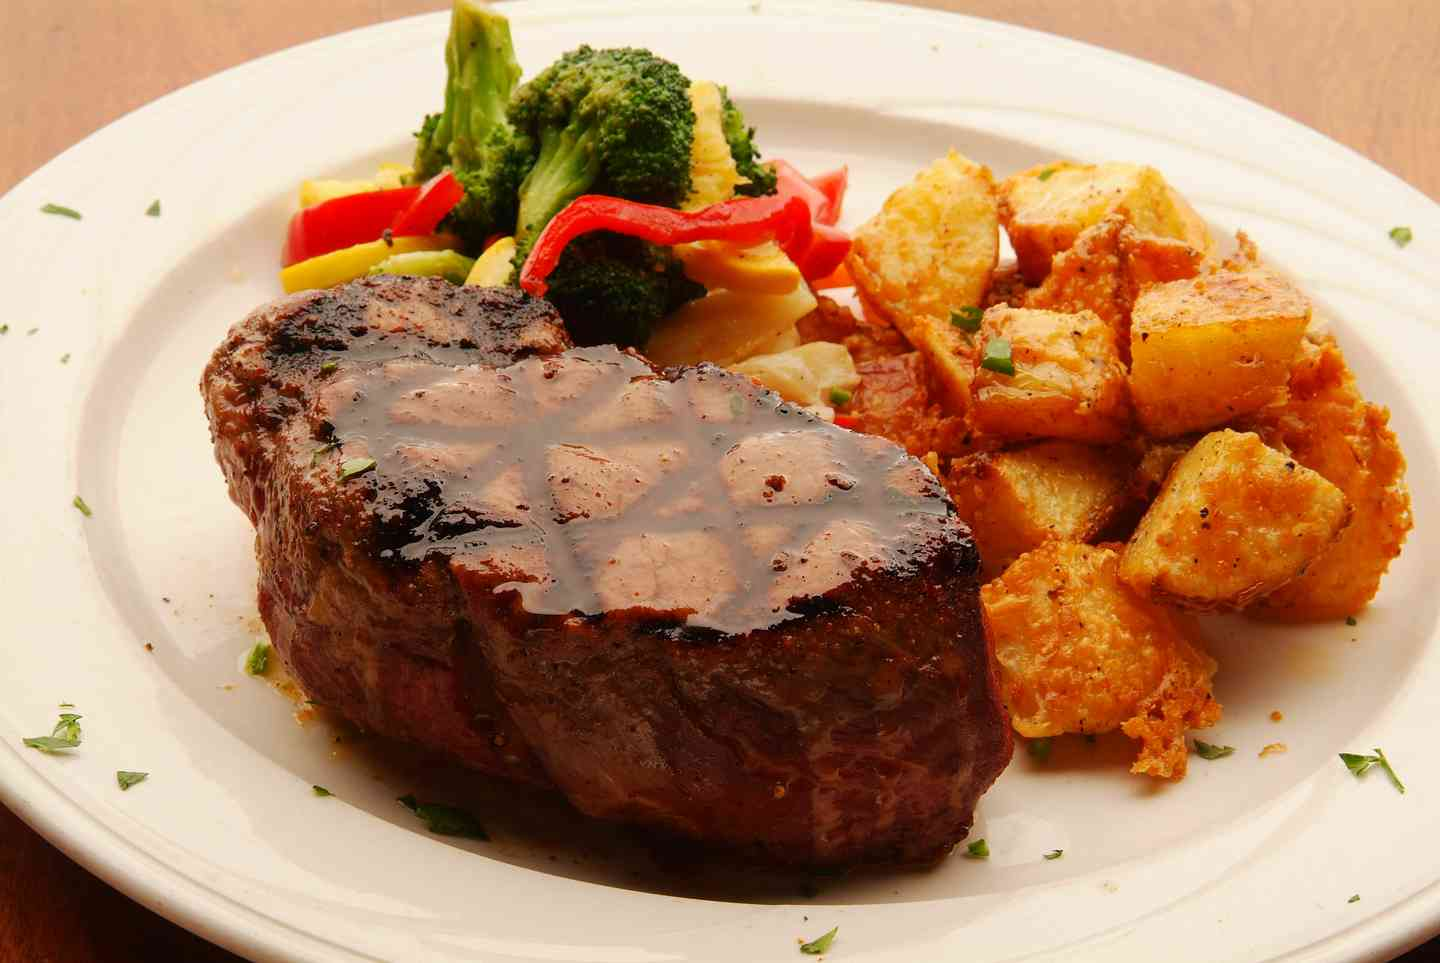 Melrose Cut Filet (15oz)